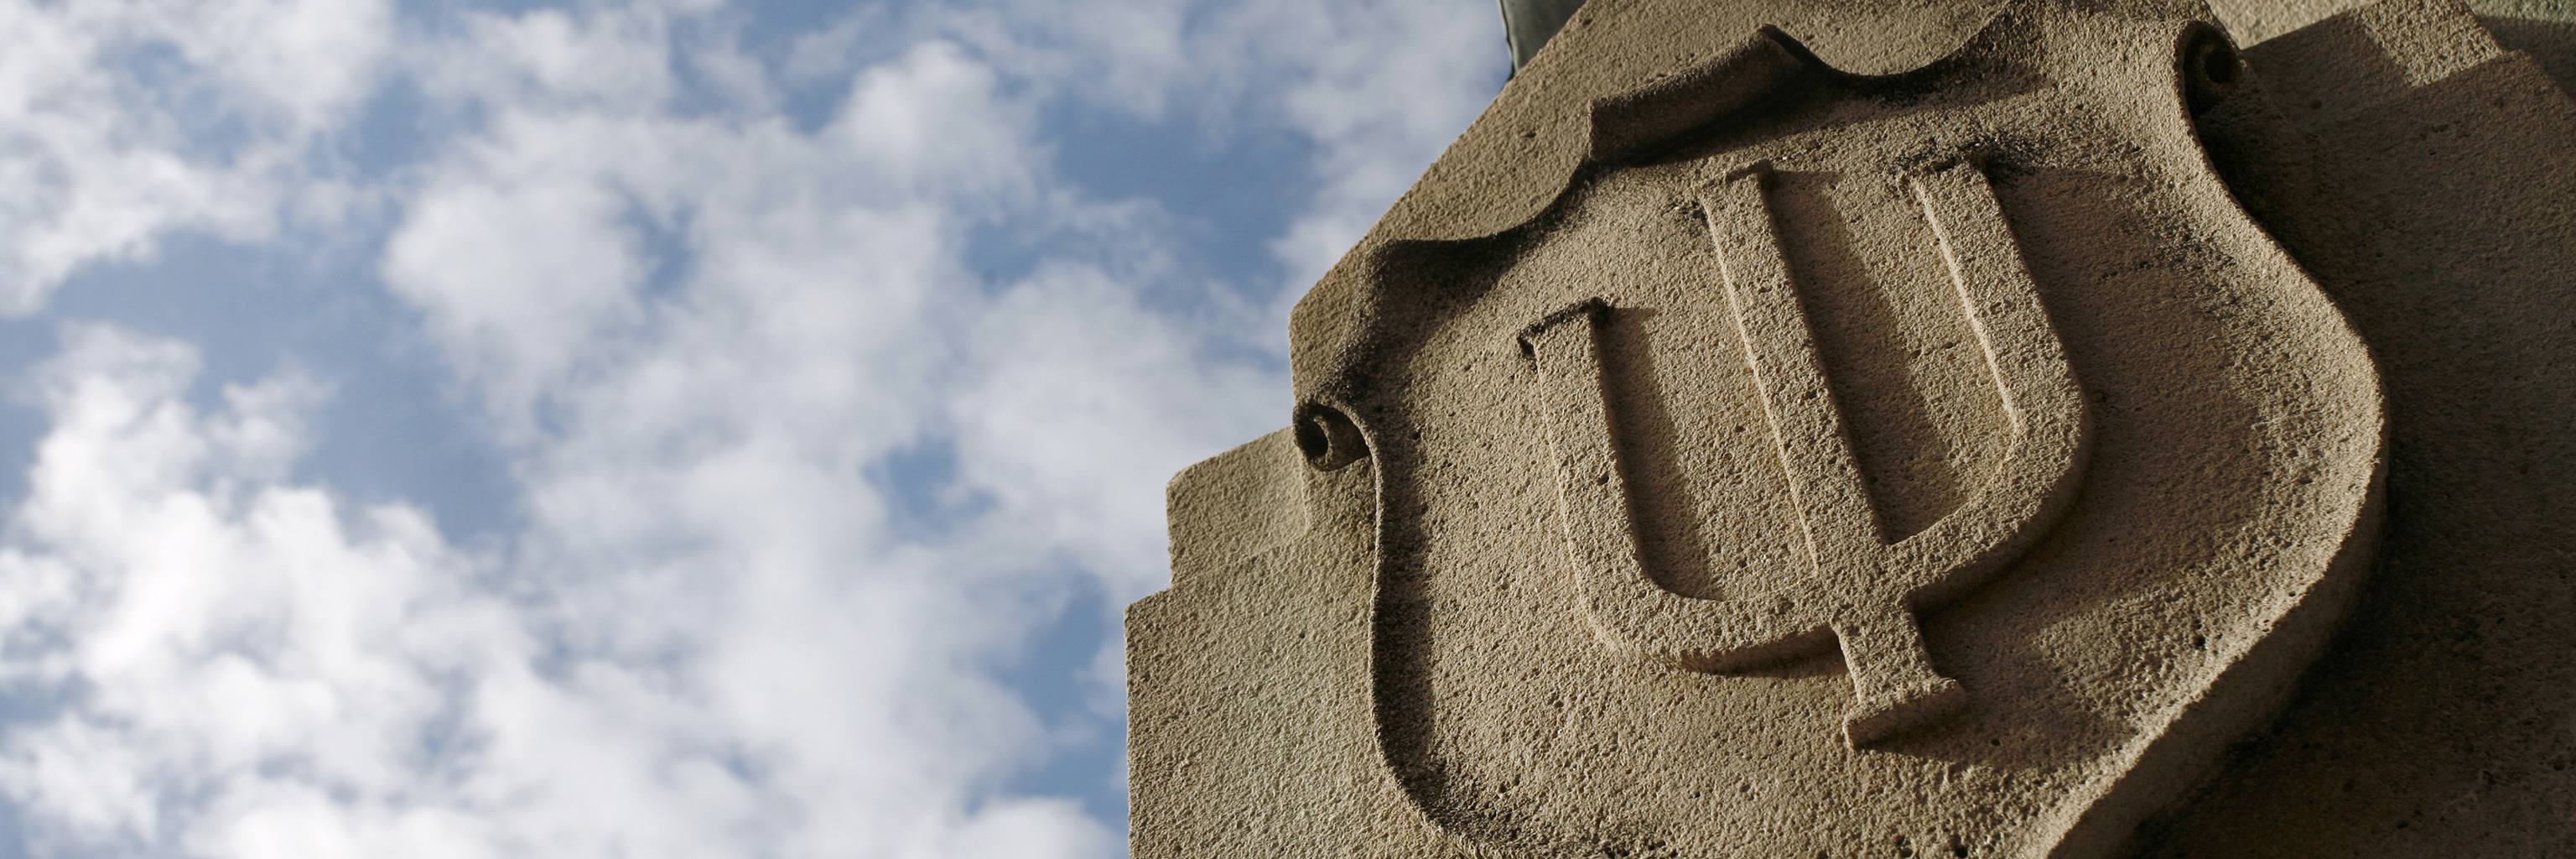 The Indiana University trident logo carved into stone.